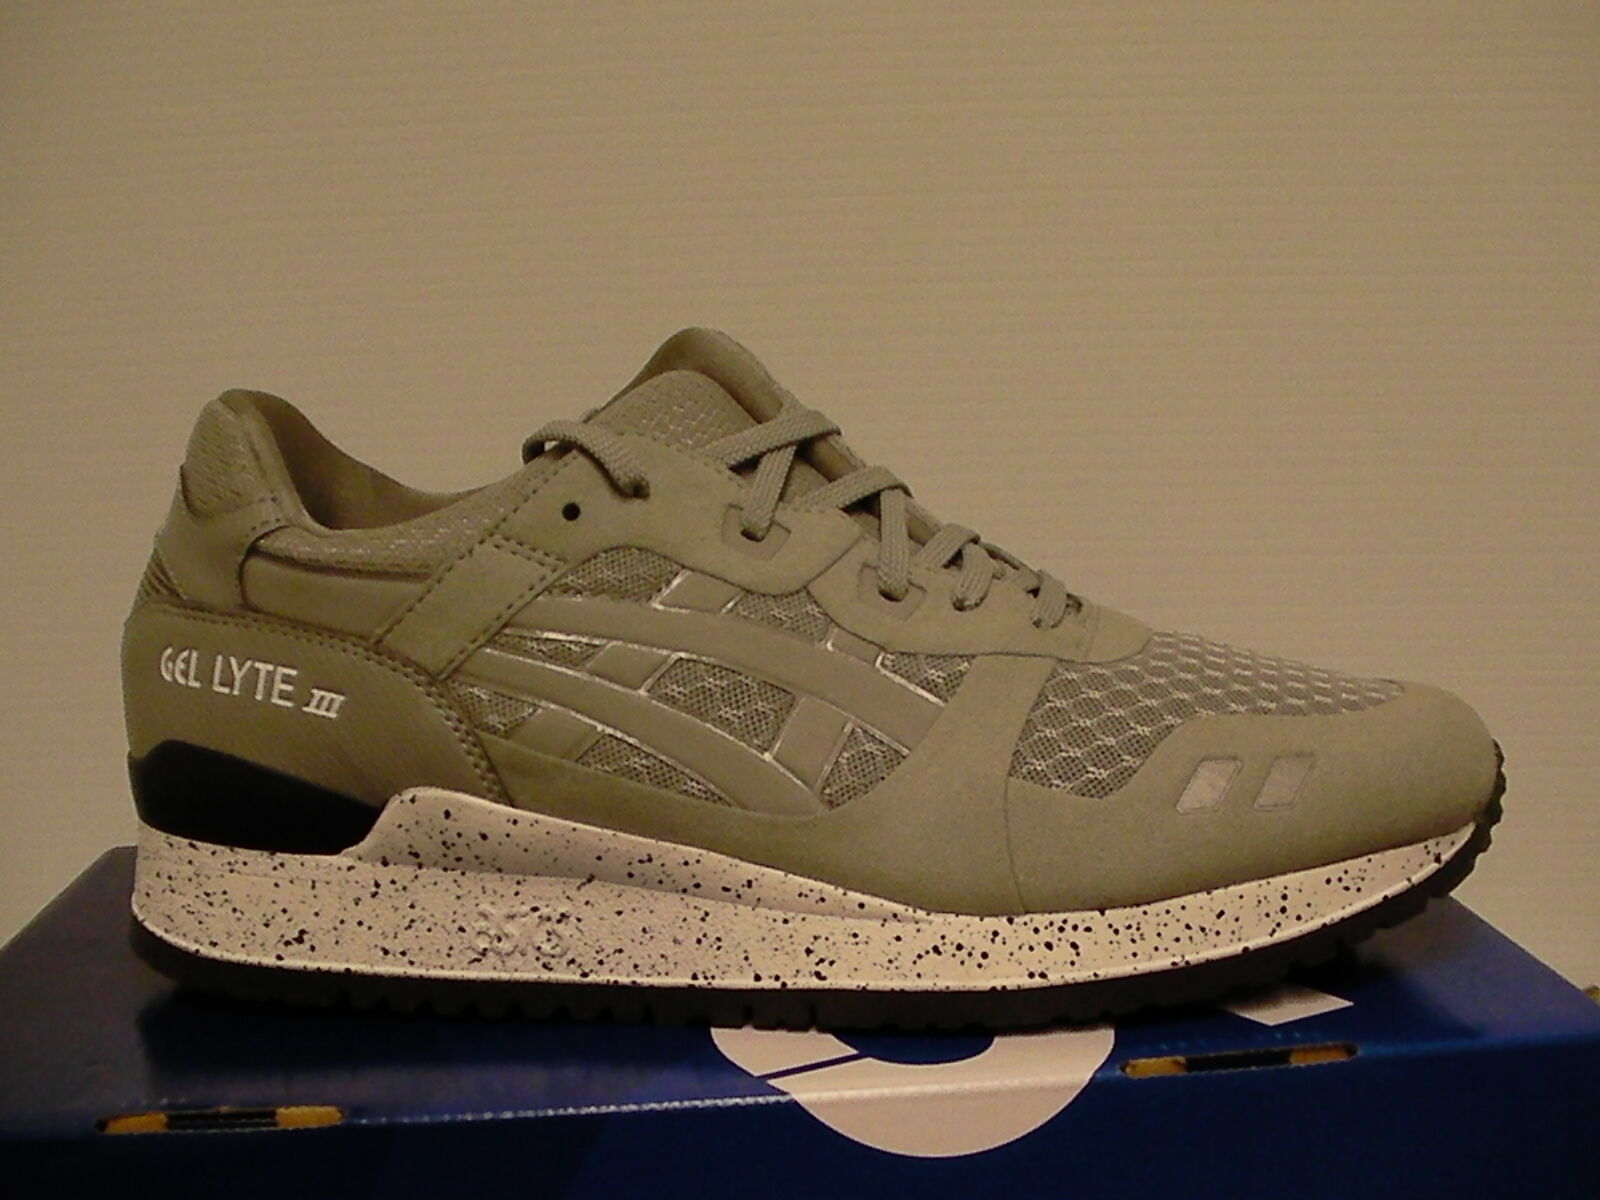 Primary image for Asics running shoes gel-lyte iii size 10 us men light grey new with box